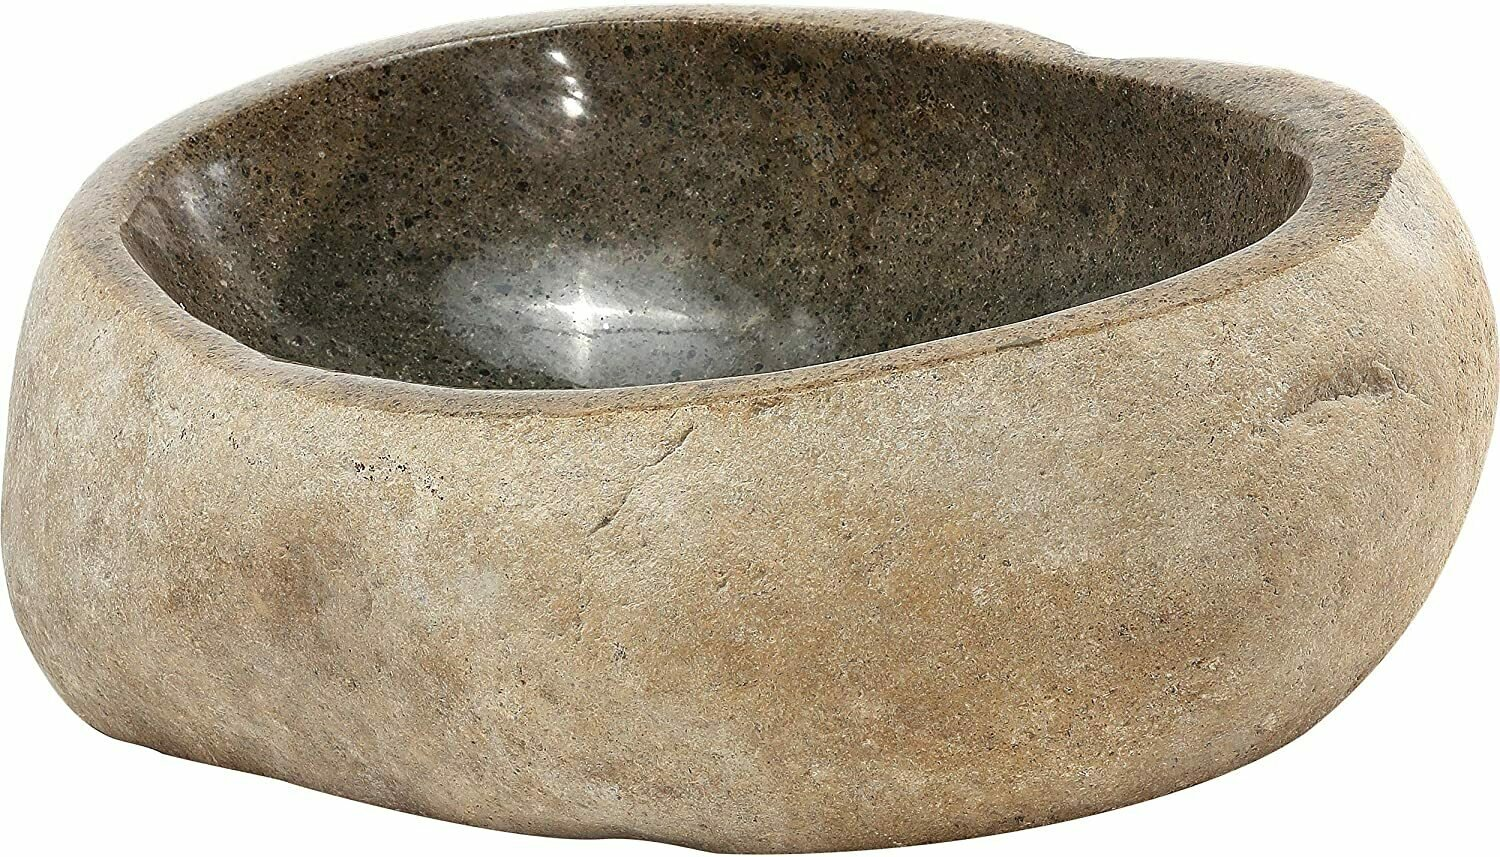 Lucki Stainless Steel Natural River Stone Glass Vessel Sink